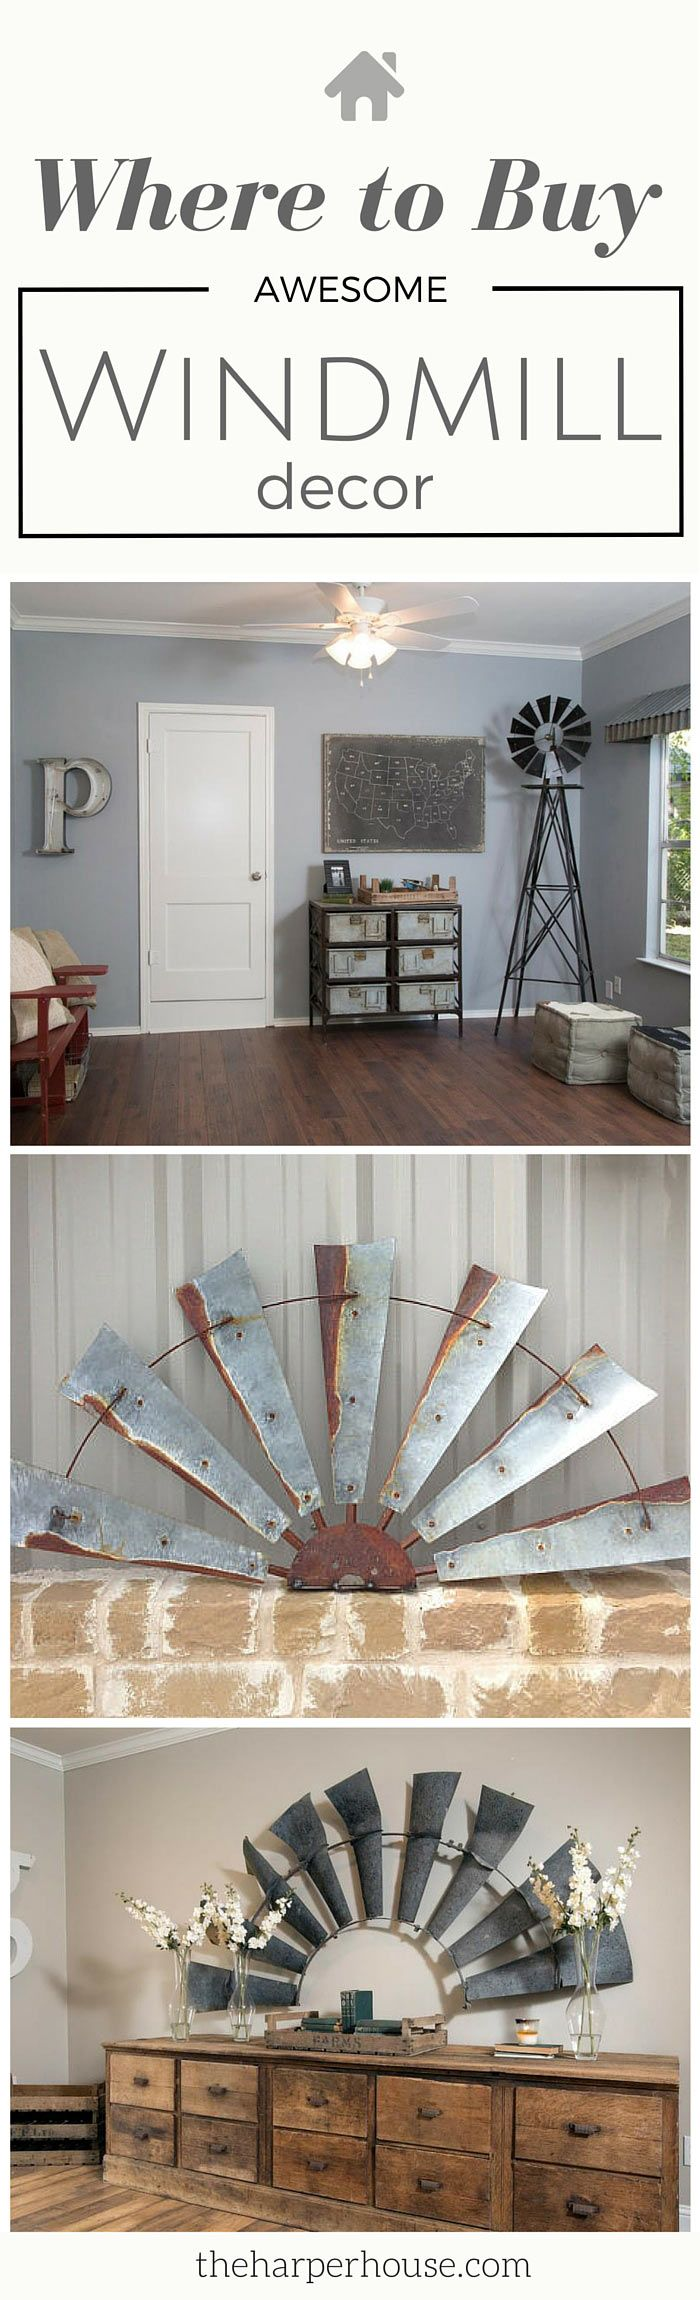 This is awesome! I've always wondered where to buy Fixer Upper windmill decor just like Joanna Gaines uses in her designs! www.theharperhouse.com                                                                                                                                                     More